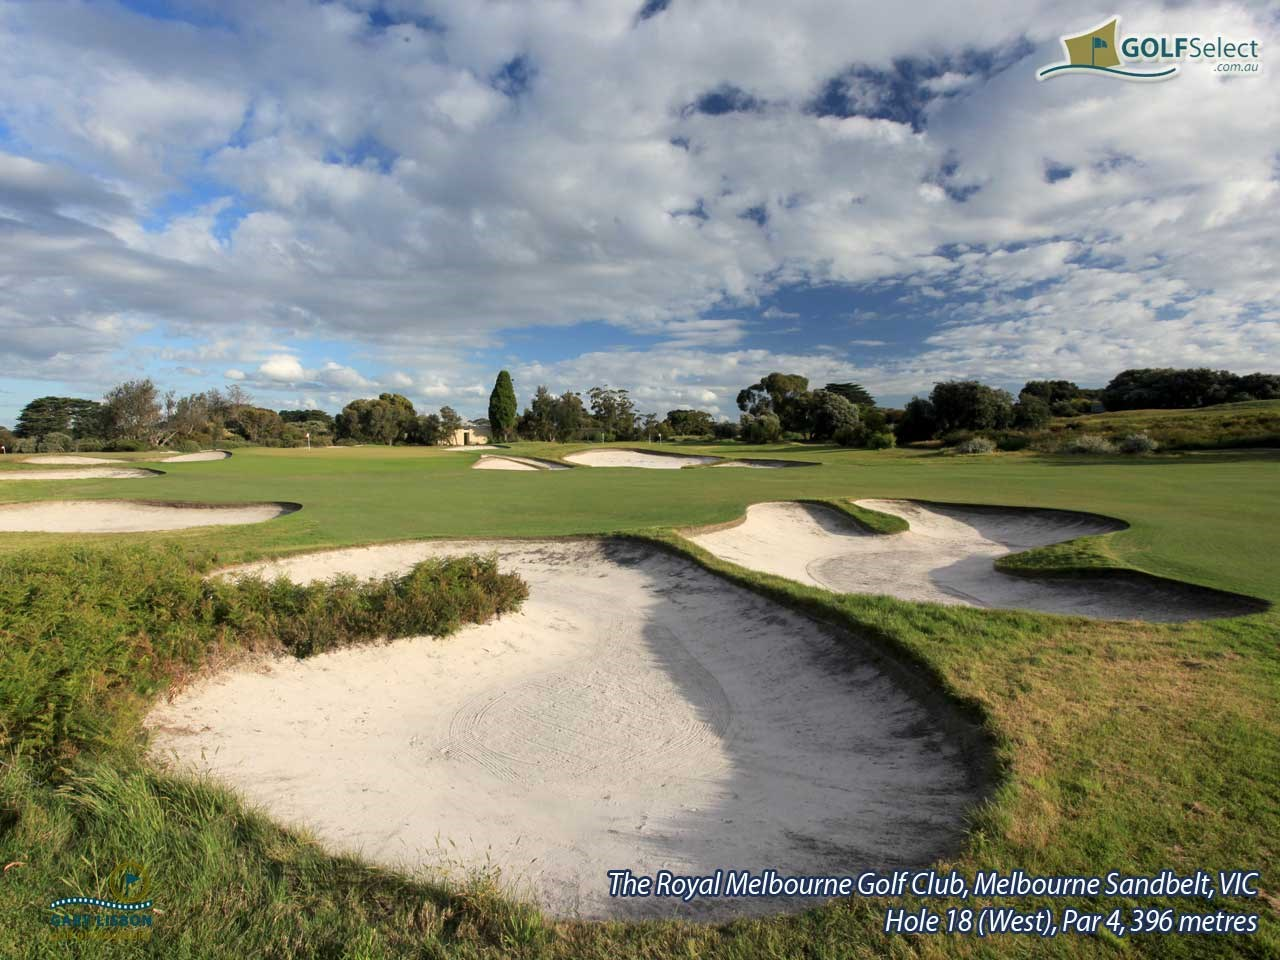 The Royal Melbourne Golf Club (West Course) Hole 18 (West), Par 4, 396 metres